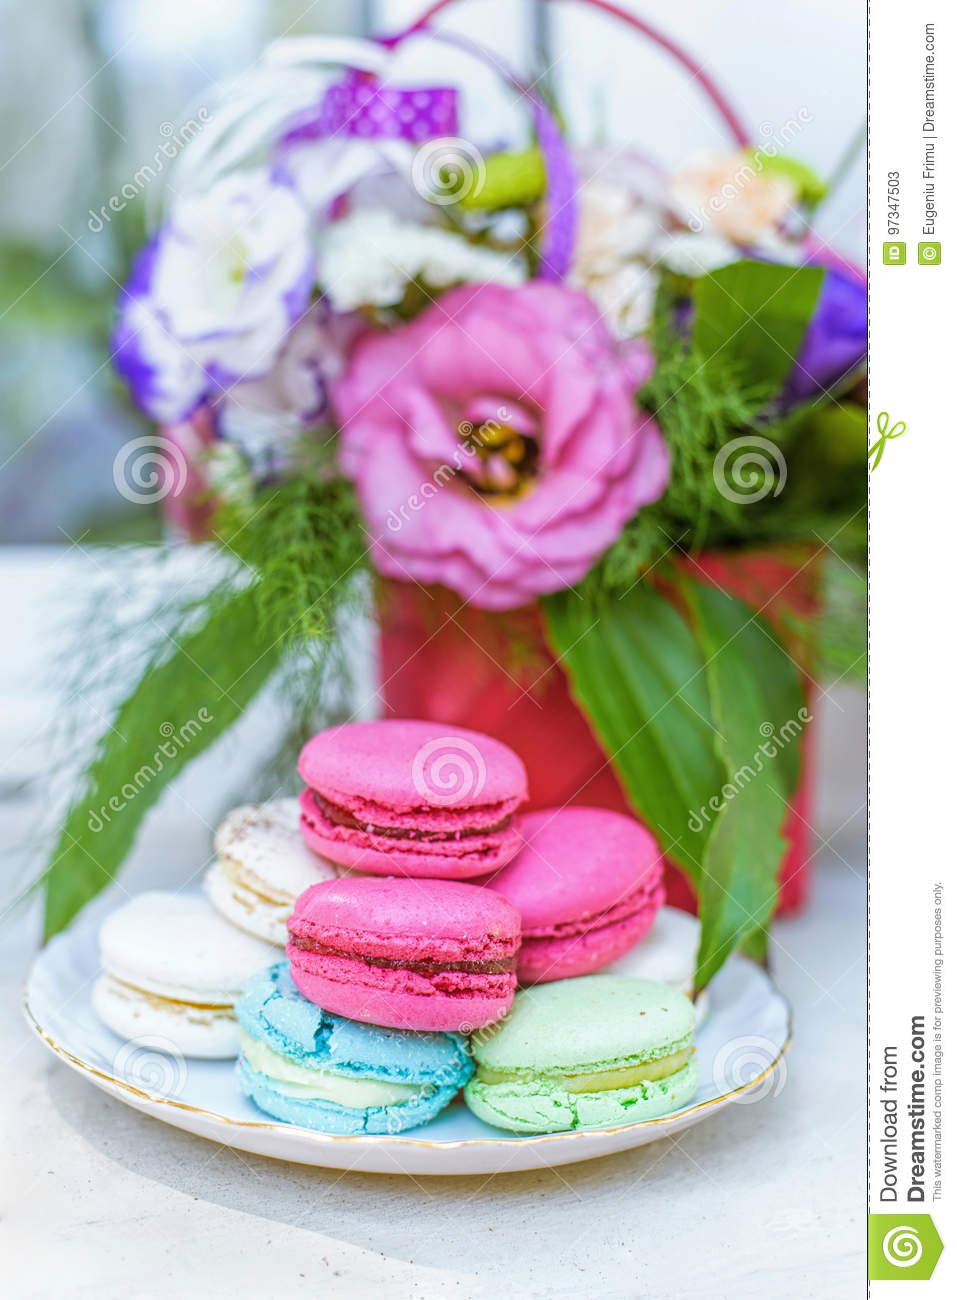 Flowers Bouquet In A Basket Stock Image Image Of Isolated Bright